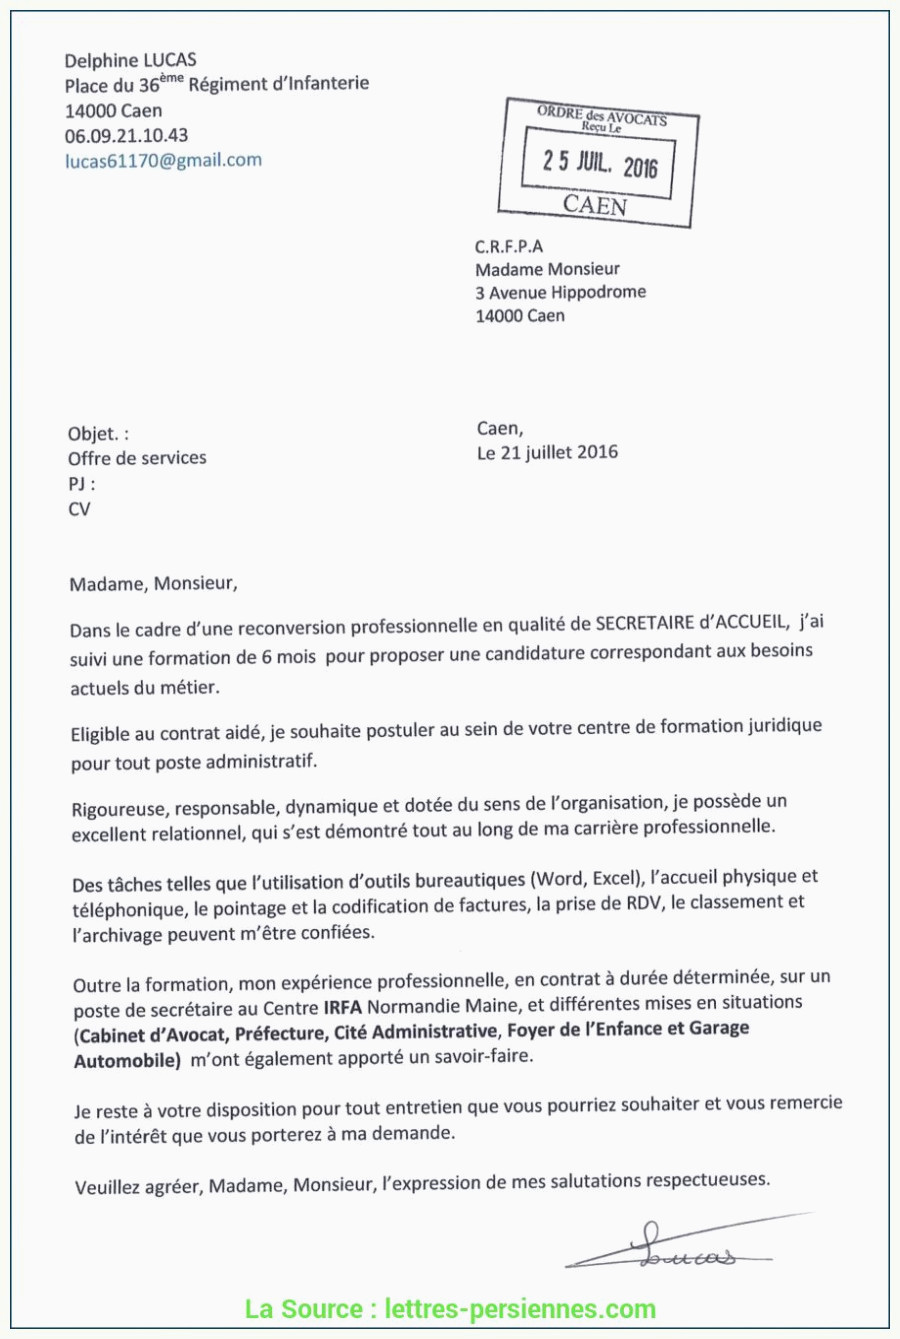 Lettre De Motivation Reconversion Professionnelle Agréable Lettre De Motivation Reconversion Vente Modele Lettre De